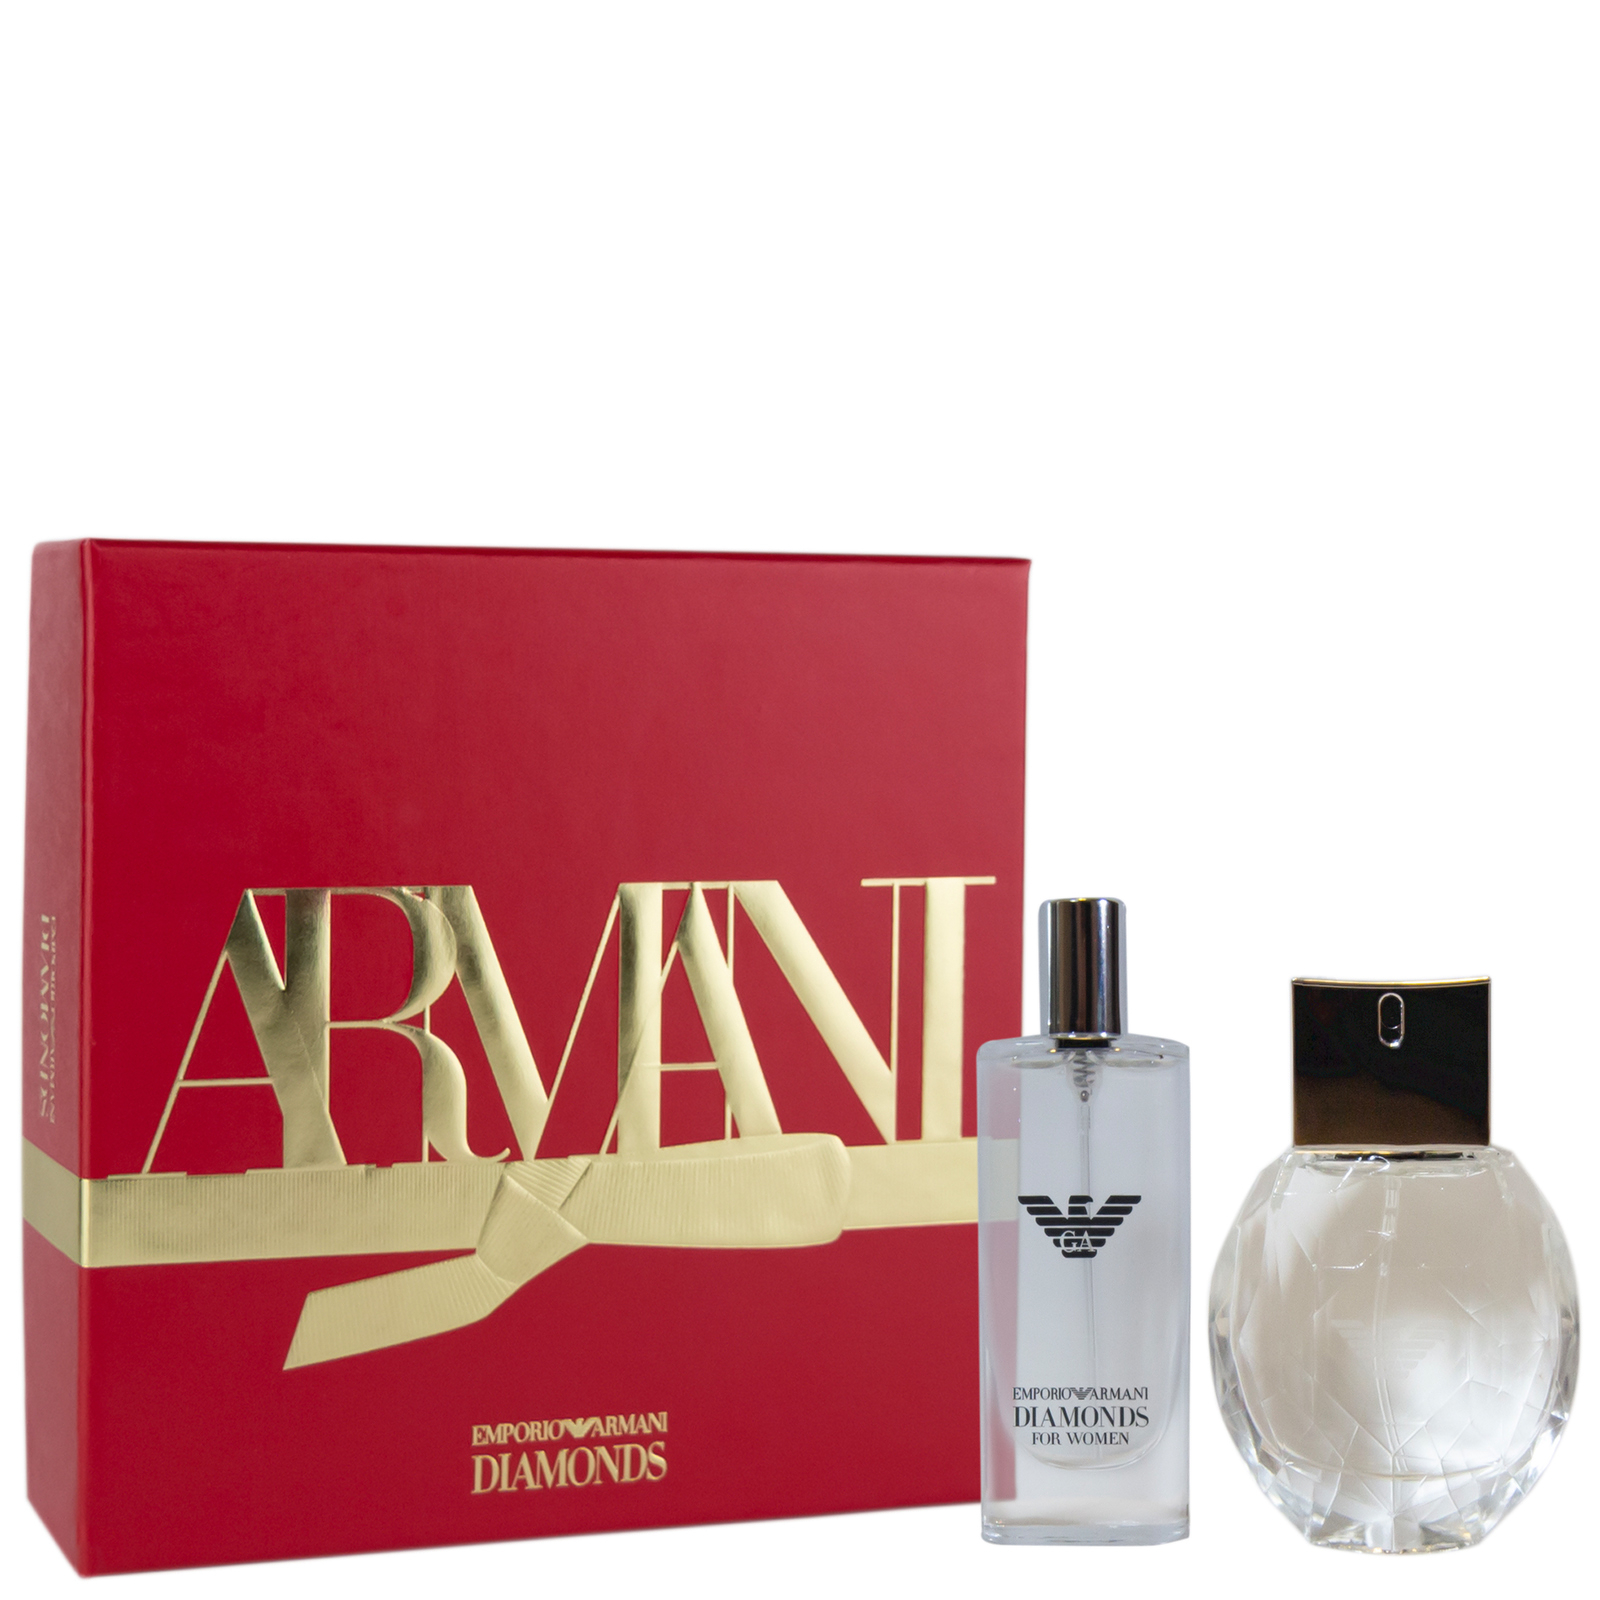 Armani Christmas 2020 Diamonds Eau de Parfum Spray 50ml Gift Set